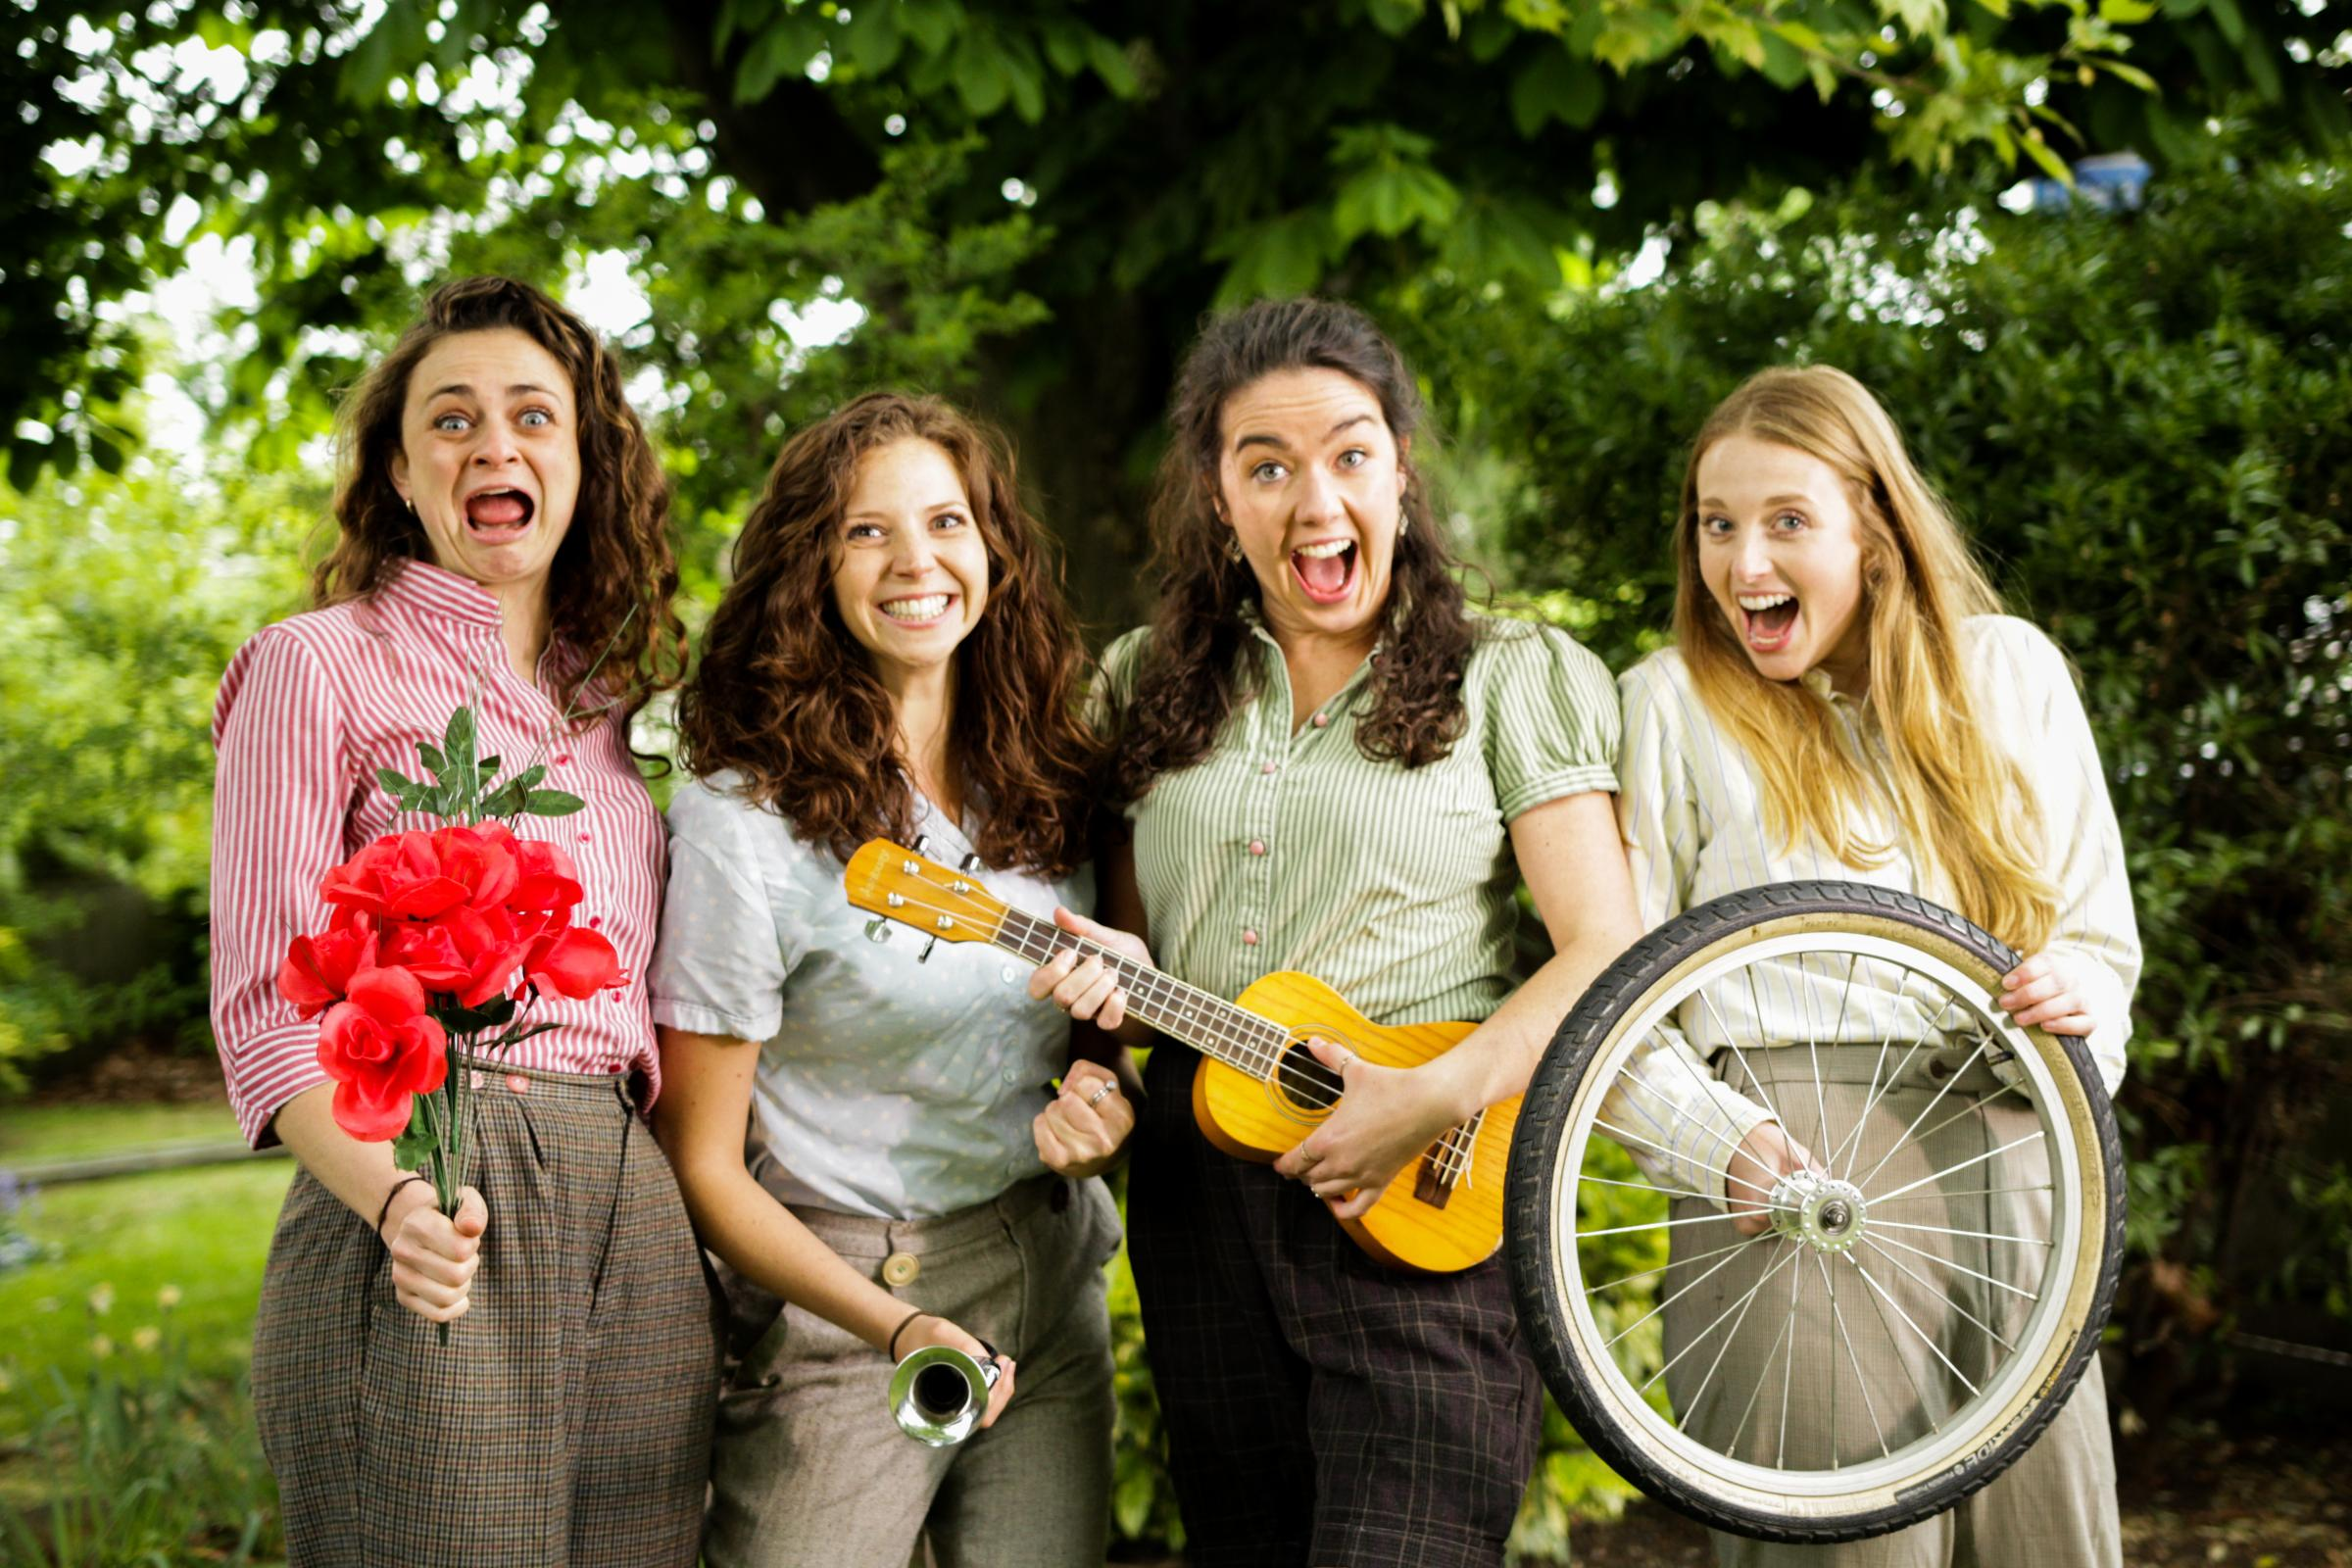 Romeo and Juliet (The Handlebards)